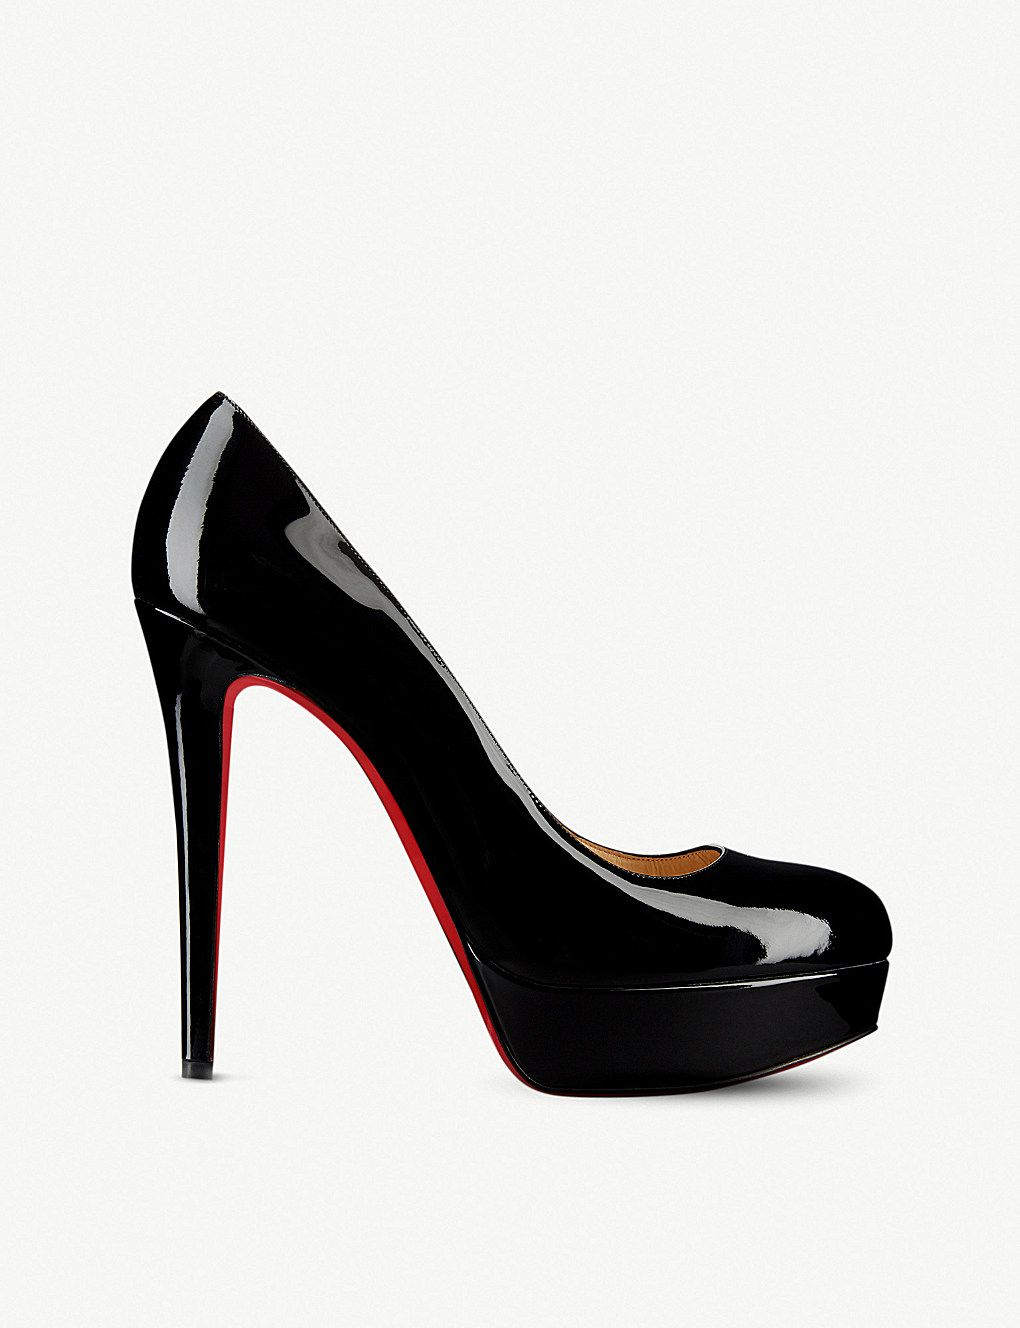 9dc33f8cb30 CHRISTIAN LOUBOUTIN Bianca 140 patent calf in 2019 | Shoes ...